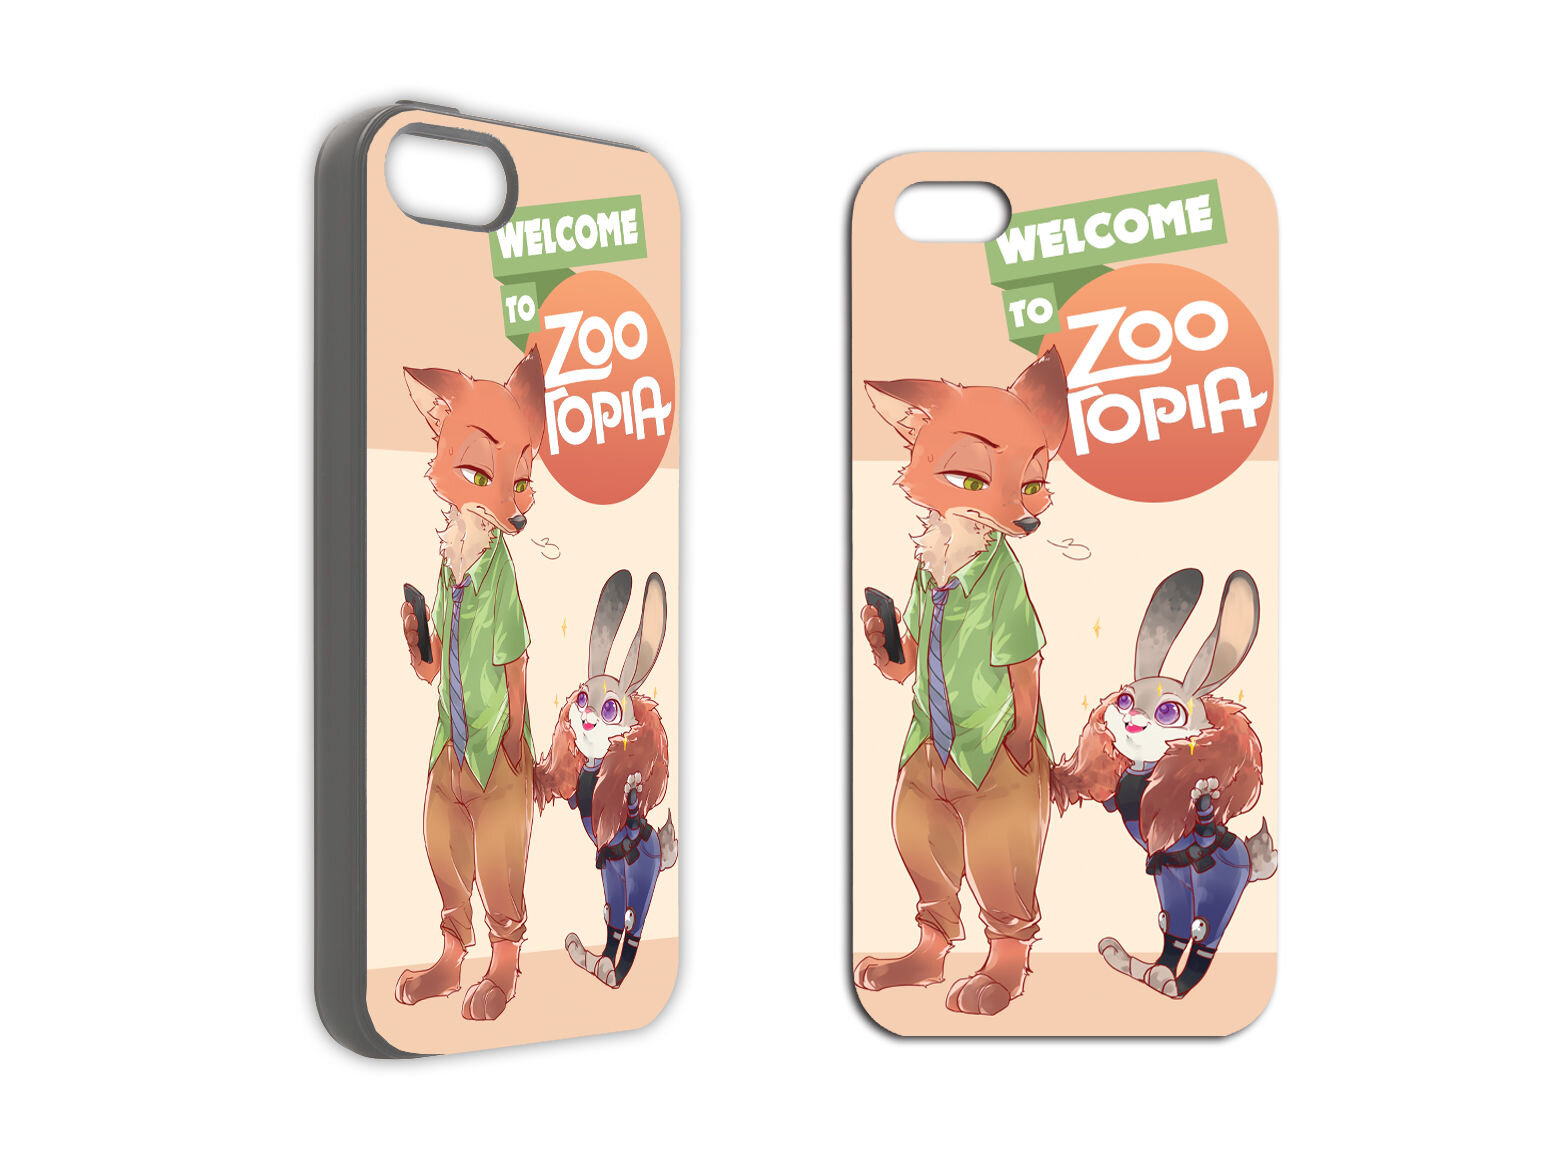 Ốp iPhone Zootopia 01